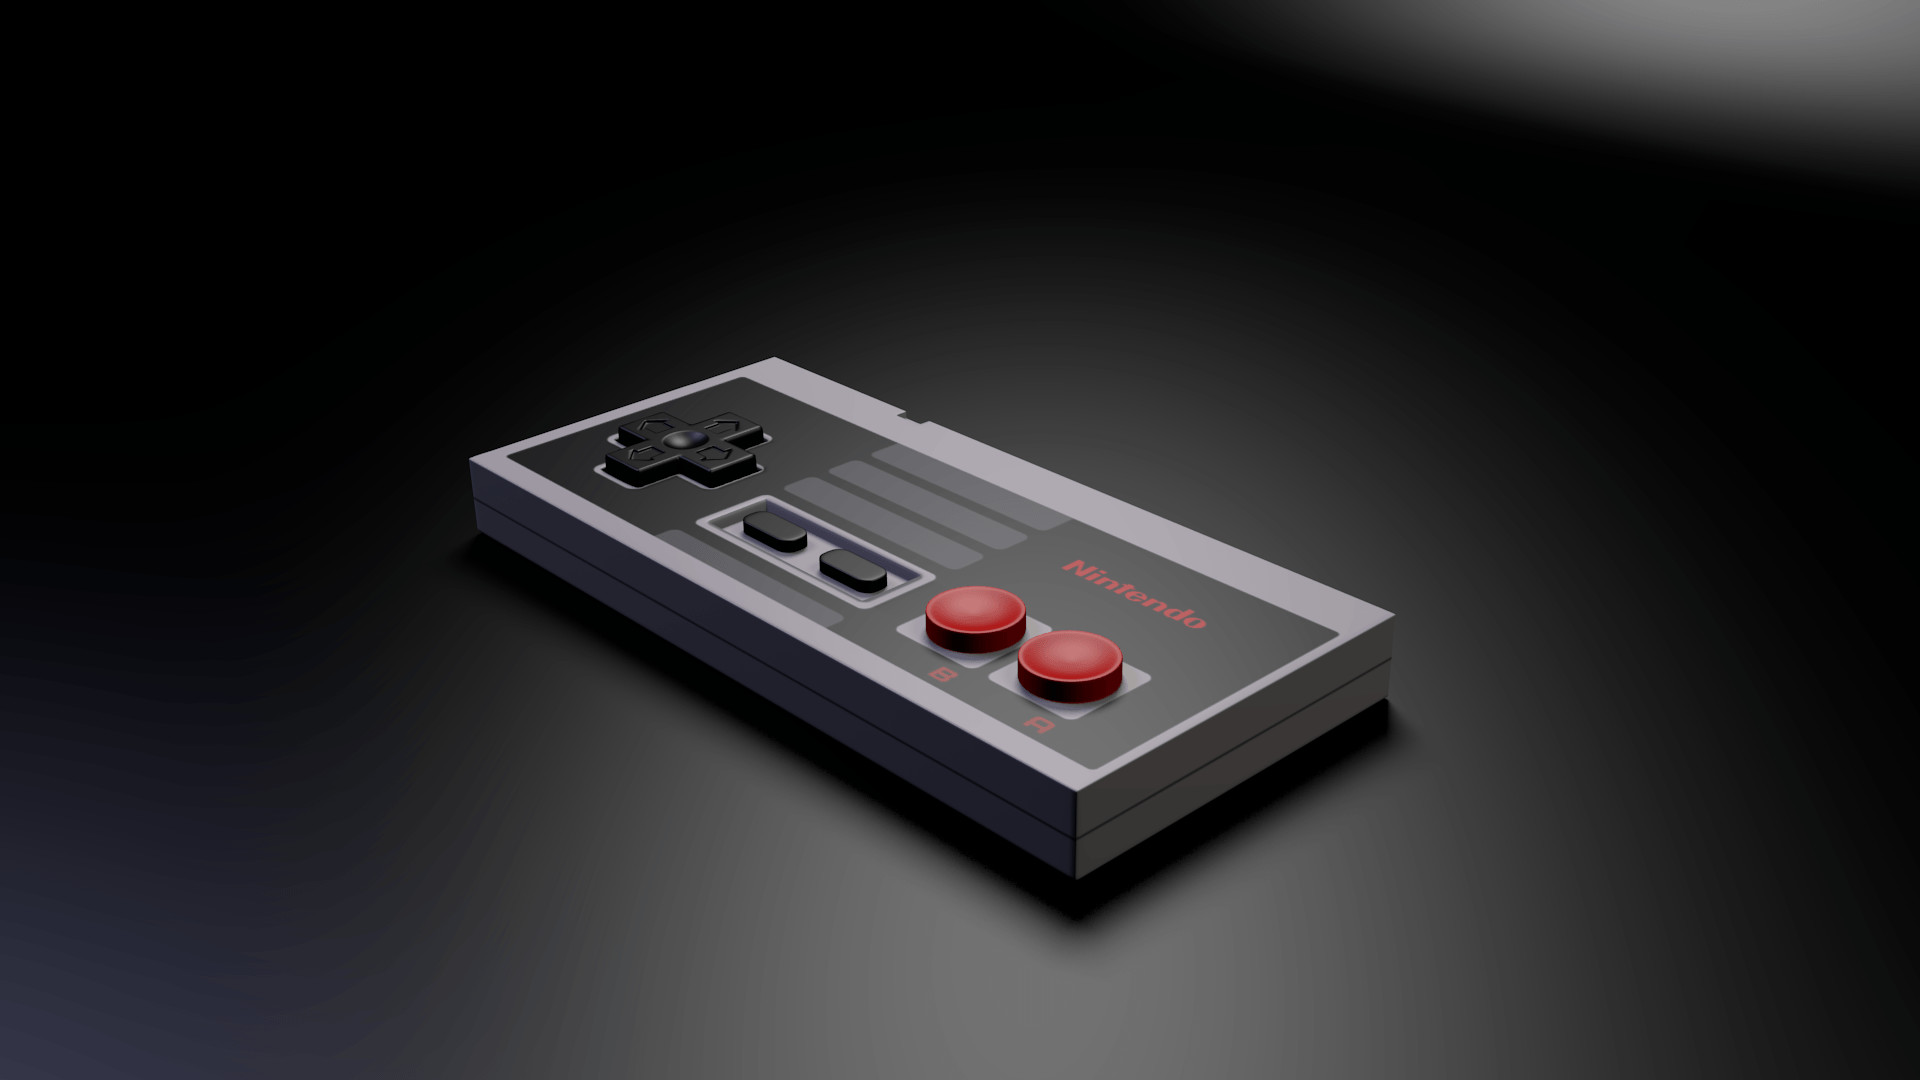 Nintendo Nes Game Console Console Controllers 1440×900 Wallpaper